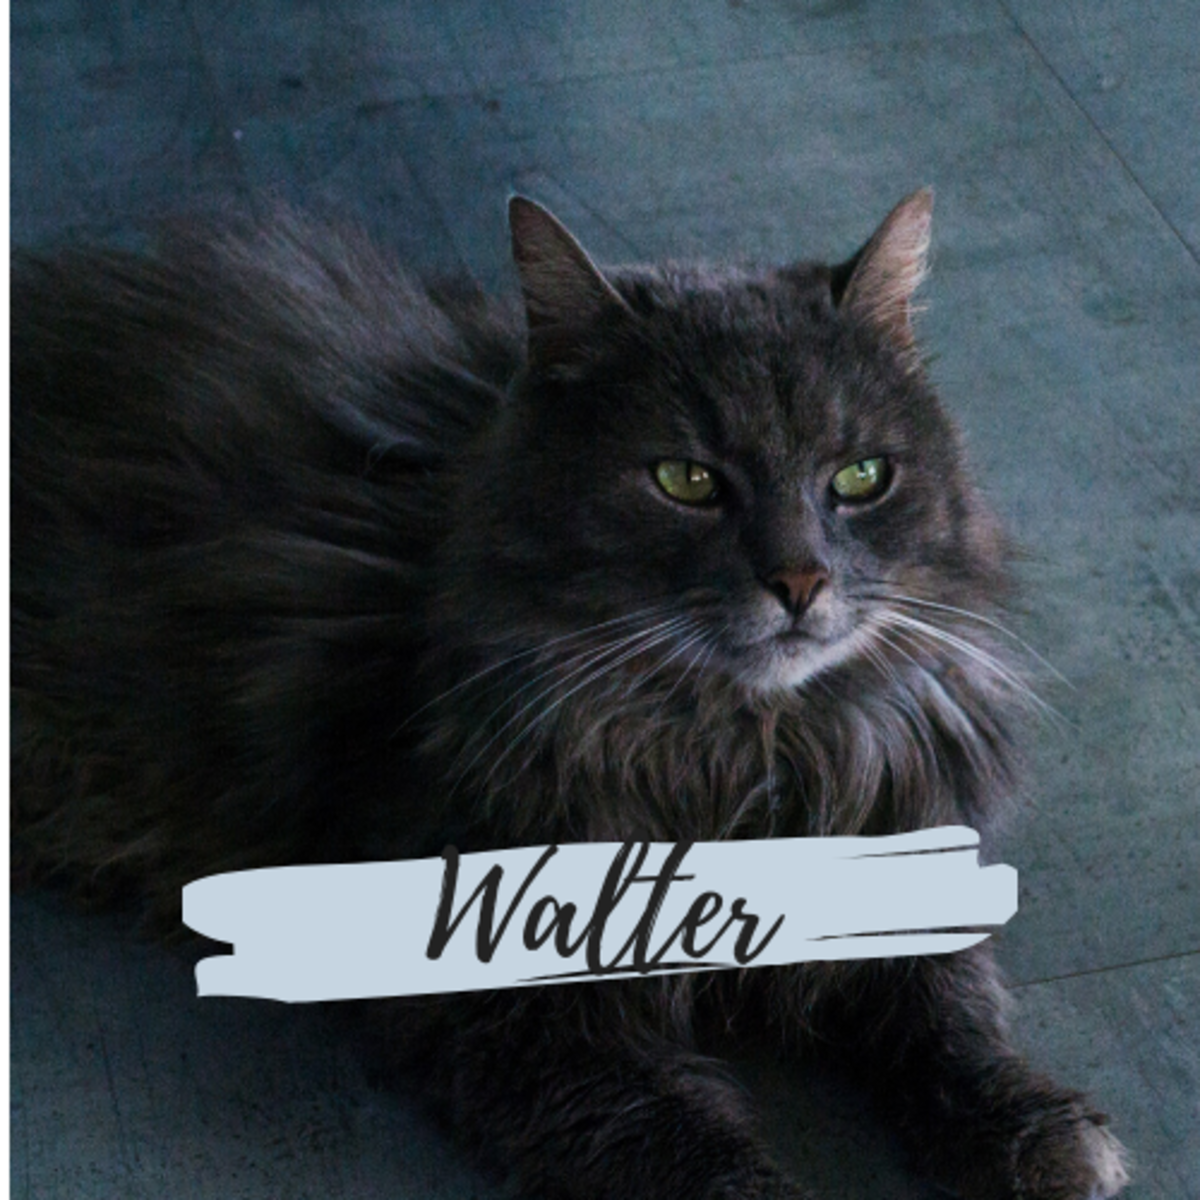 Is he a Walter?